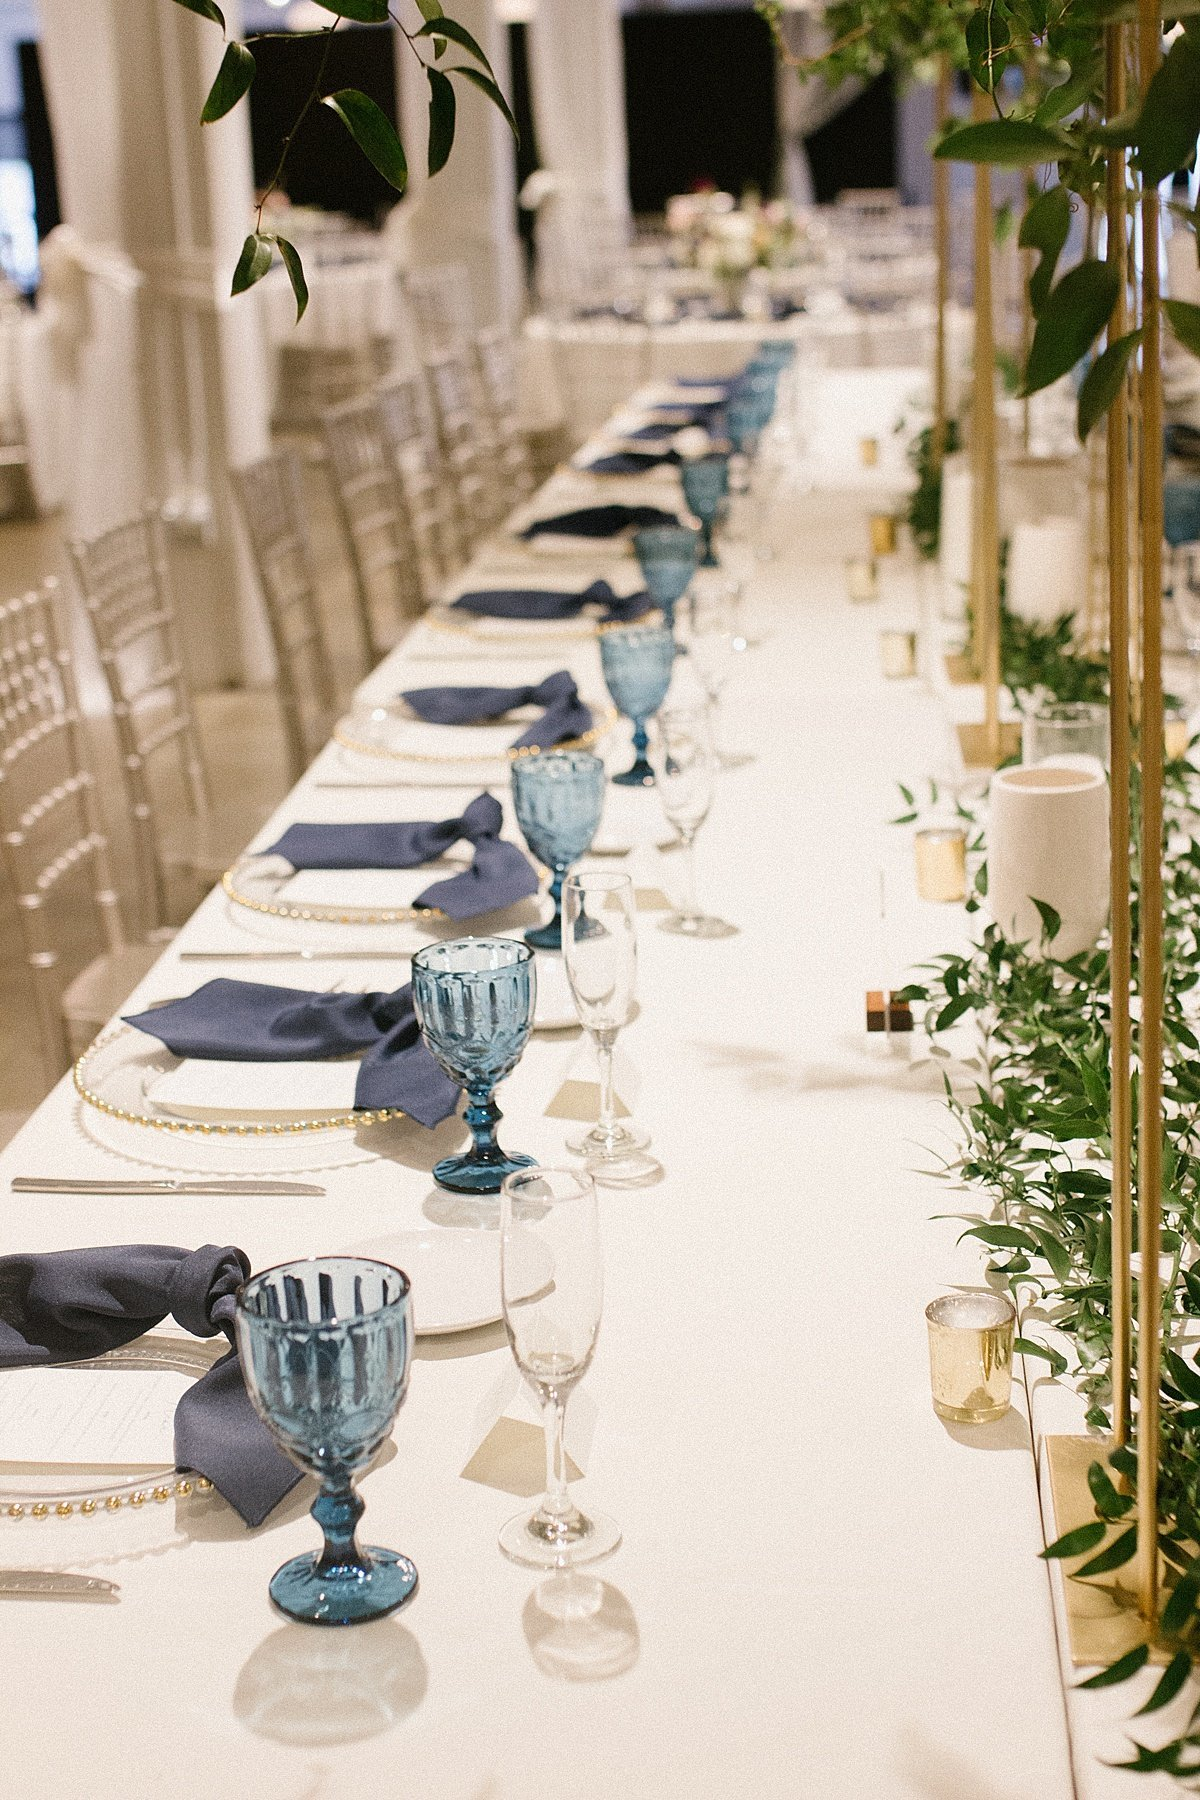 Industrial-Downtown-Burgundy-blush-blue-floral-wedding-with-elevated-greenery-at-Founder-One-Nine-by-Omaha-Nebraska-Wedding-Florist-Lindsay-Elizabeth-Events27